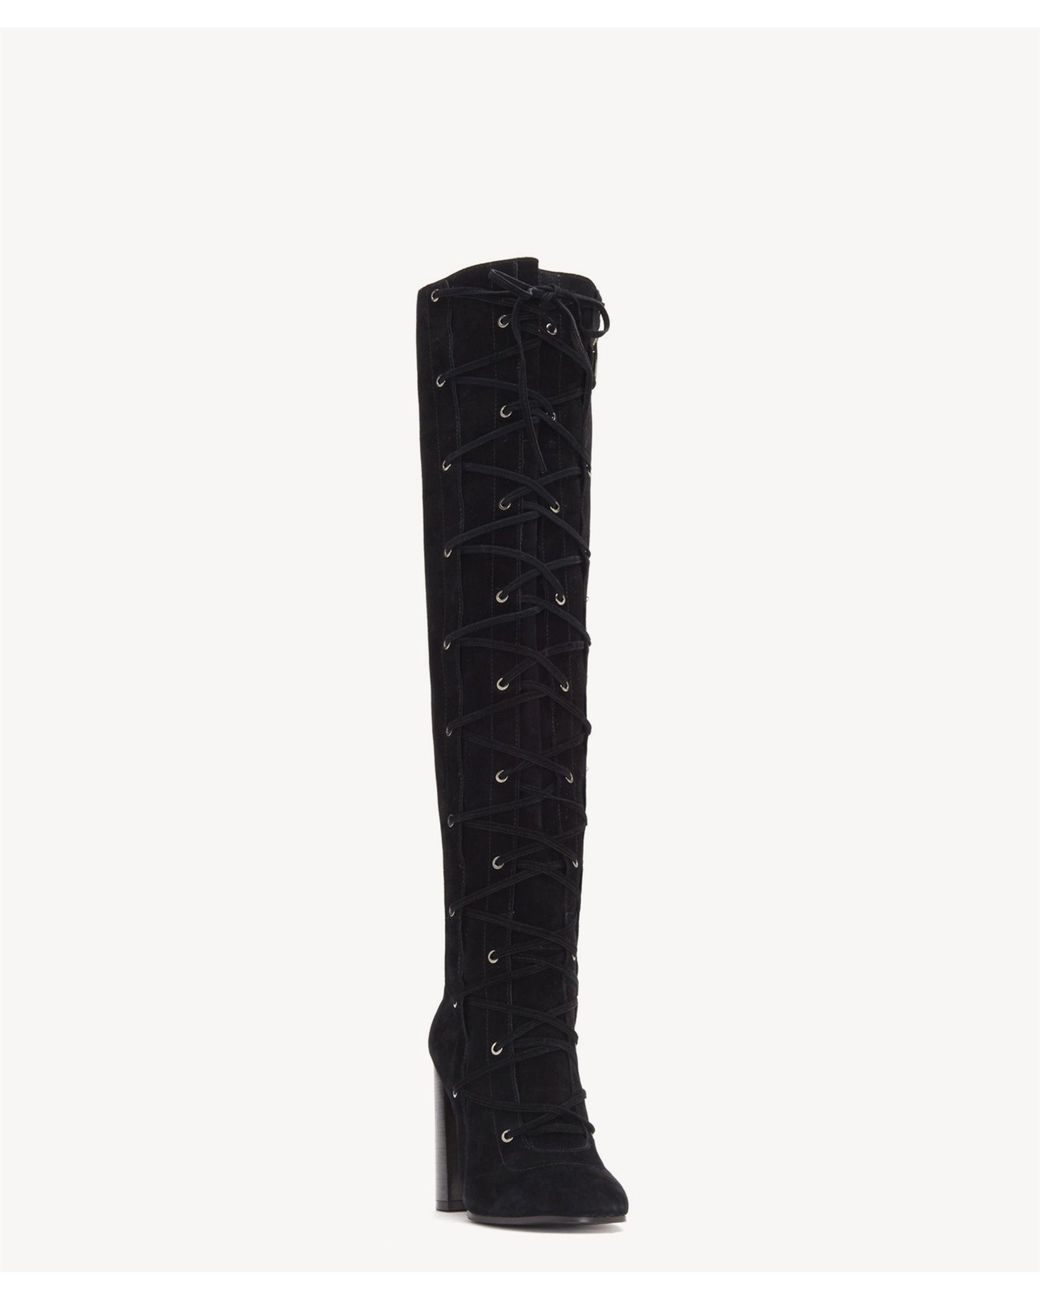 c29f4e7d060 Lyst - Vince Camuto Thanta Lace Up Tall Boot in Black